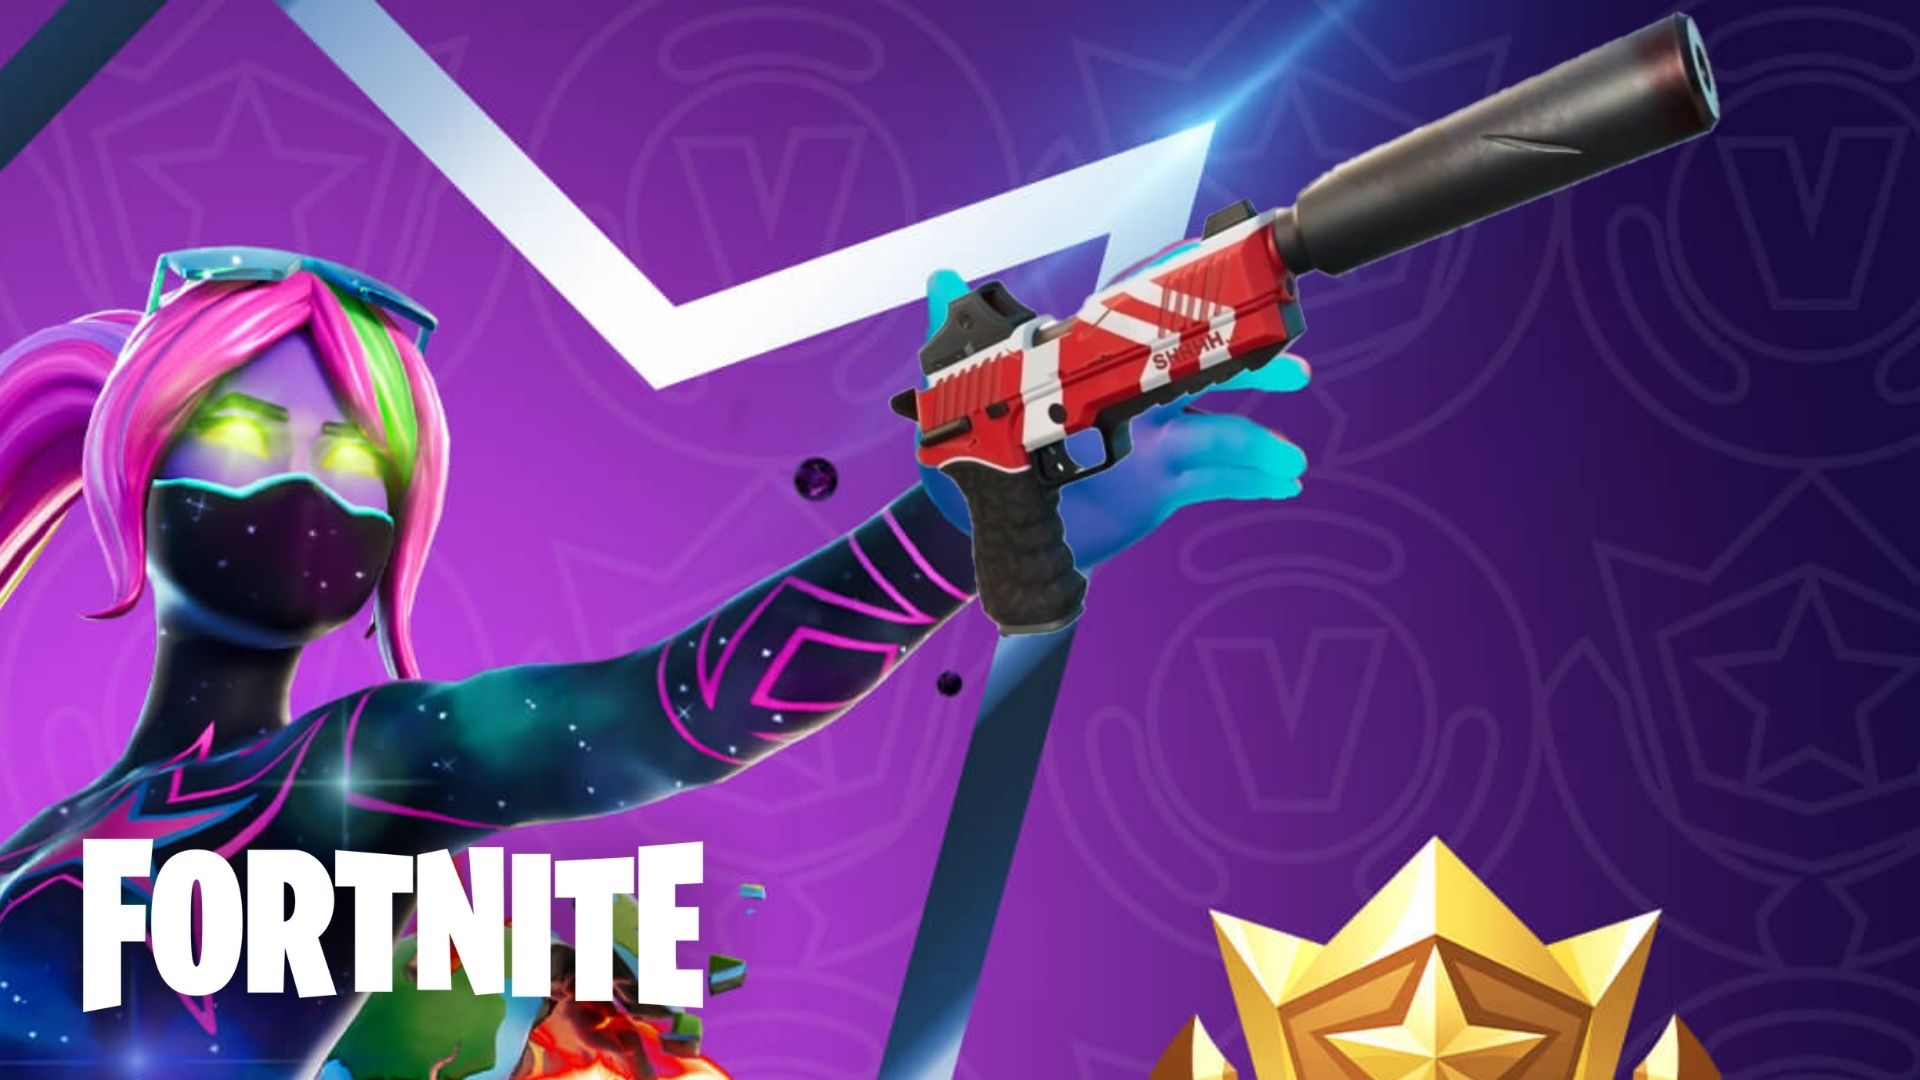 Fortnite Exotic Weapons / Fortnite 15.10 update has brought a lot of new things to the game, including new exotic weapons and even an npc.